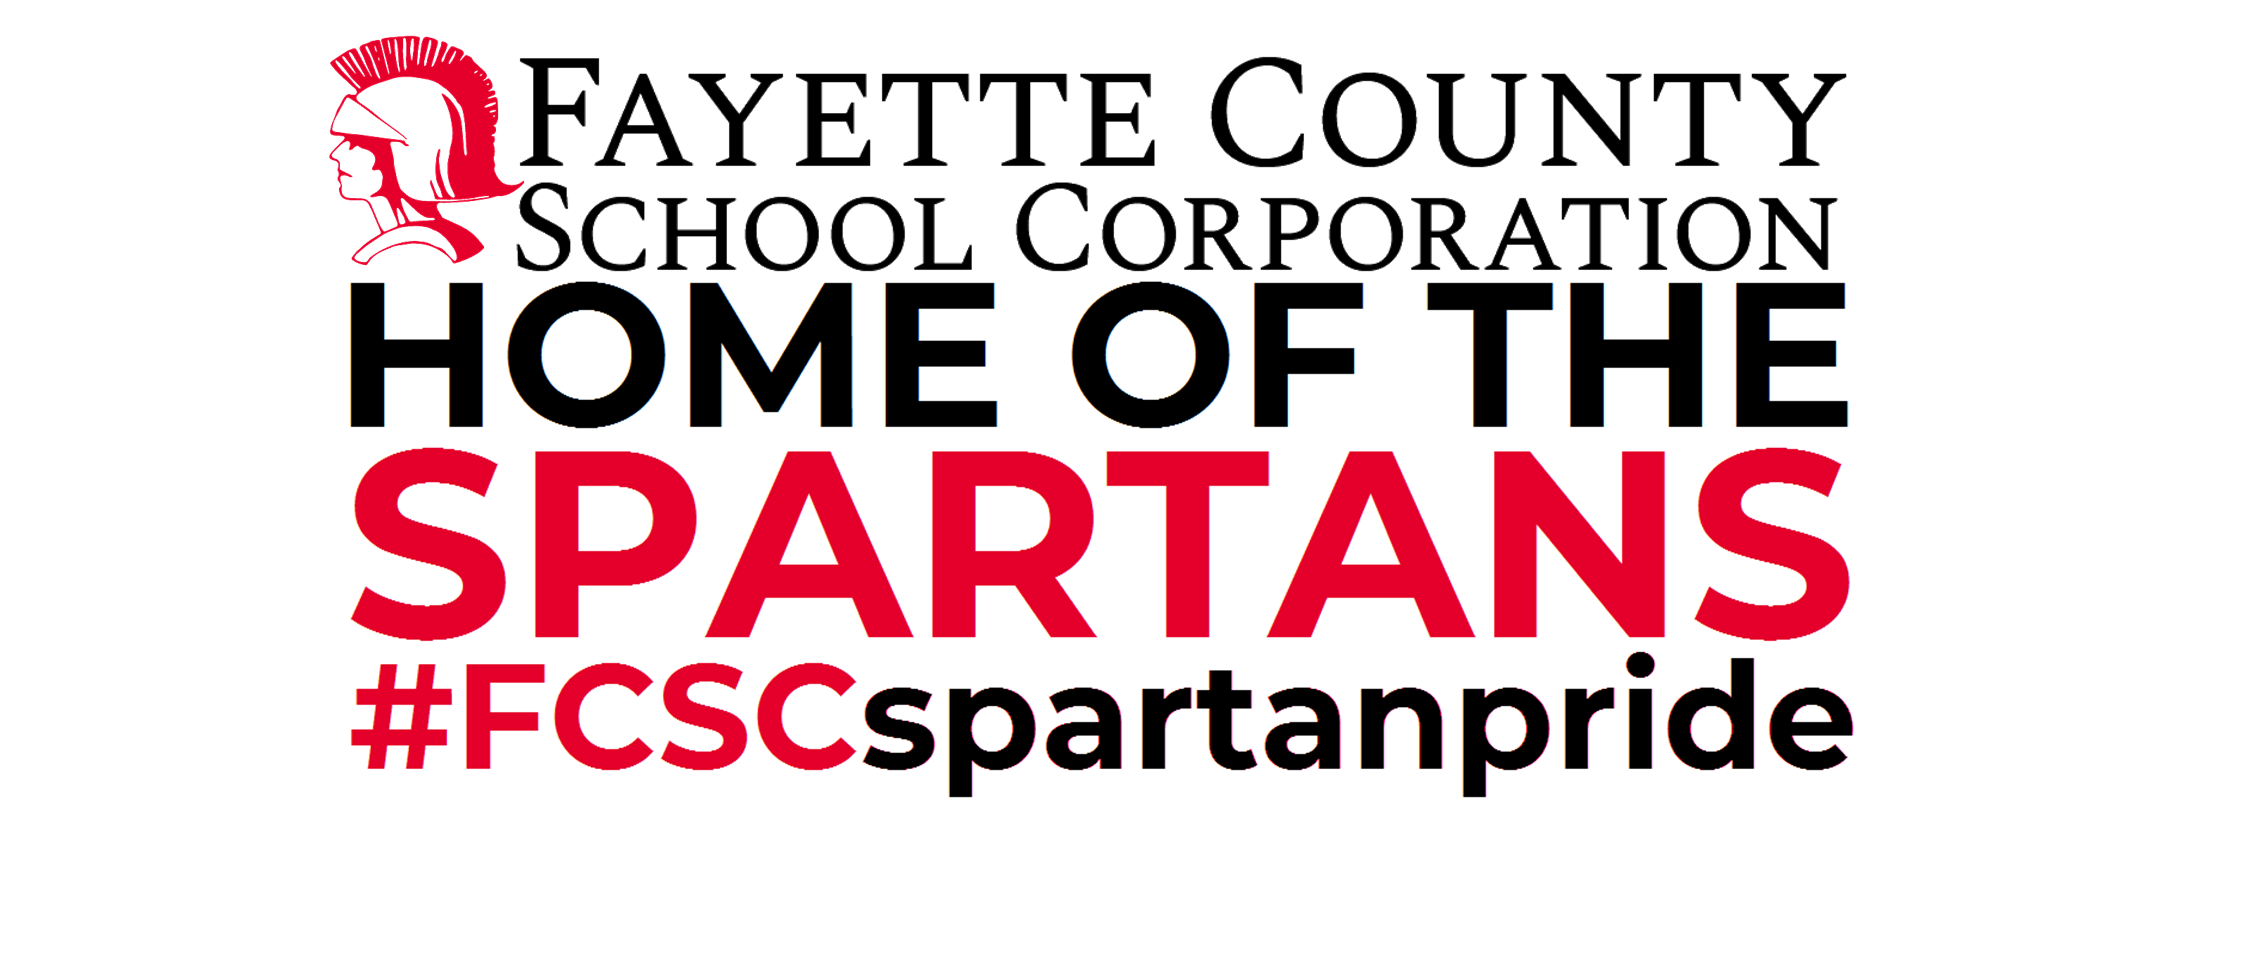 Fayette County School Corporation Home of the Spartans